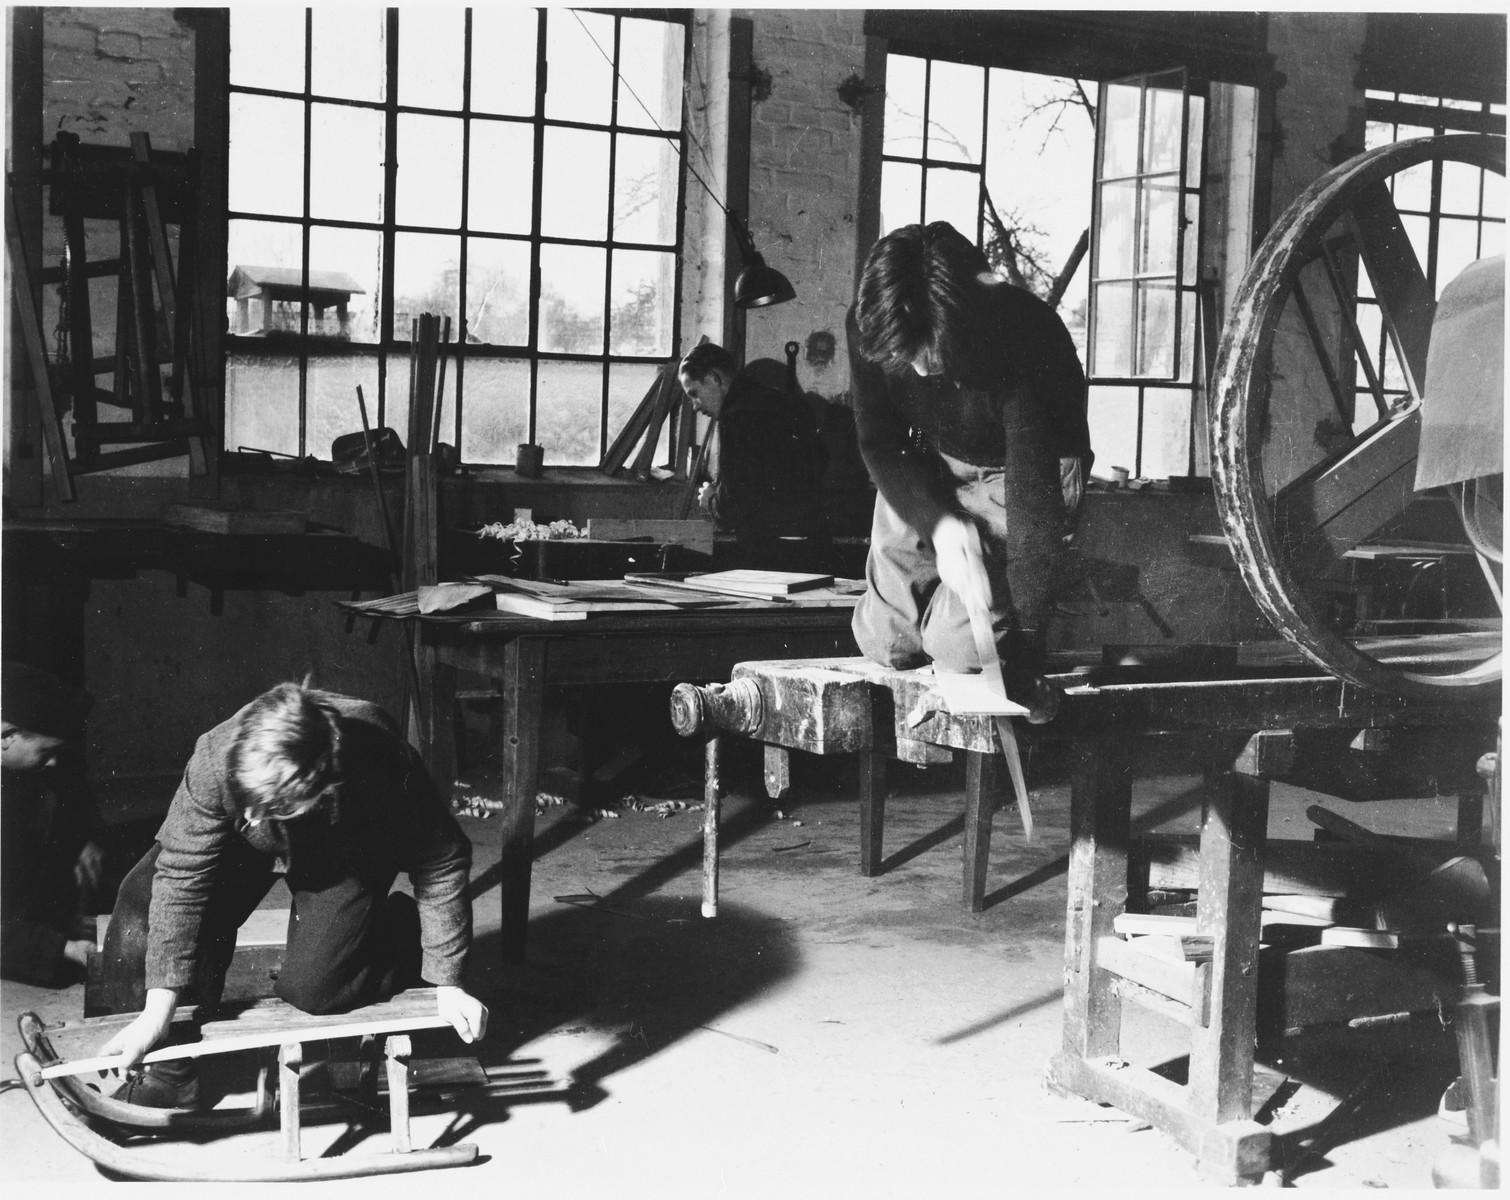 Jewish youth learn carpentry in a vocational school in either the Foehrenwald or Windsheim displaced persons' camp.